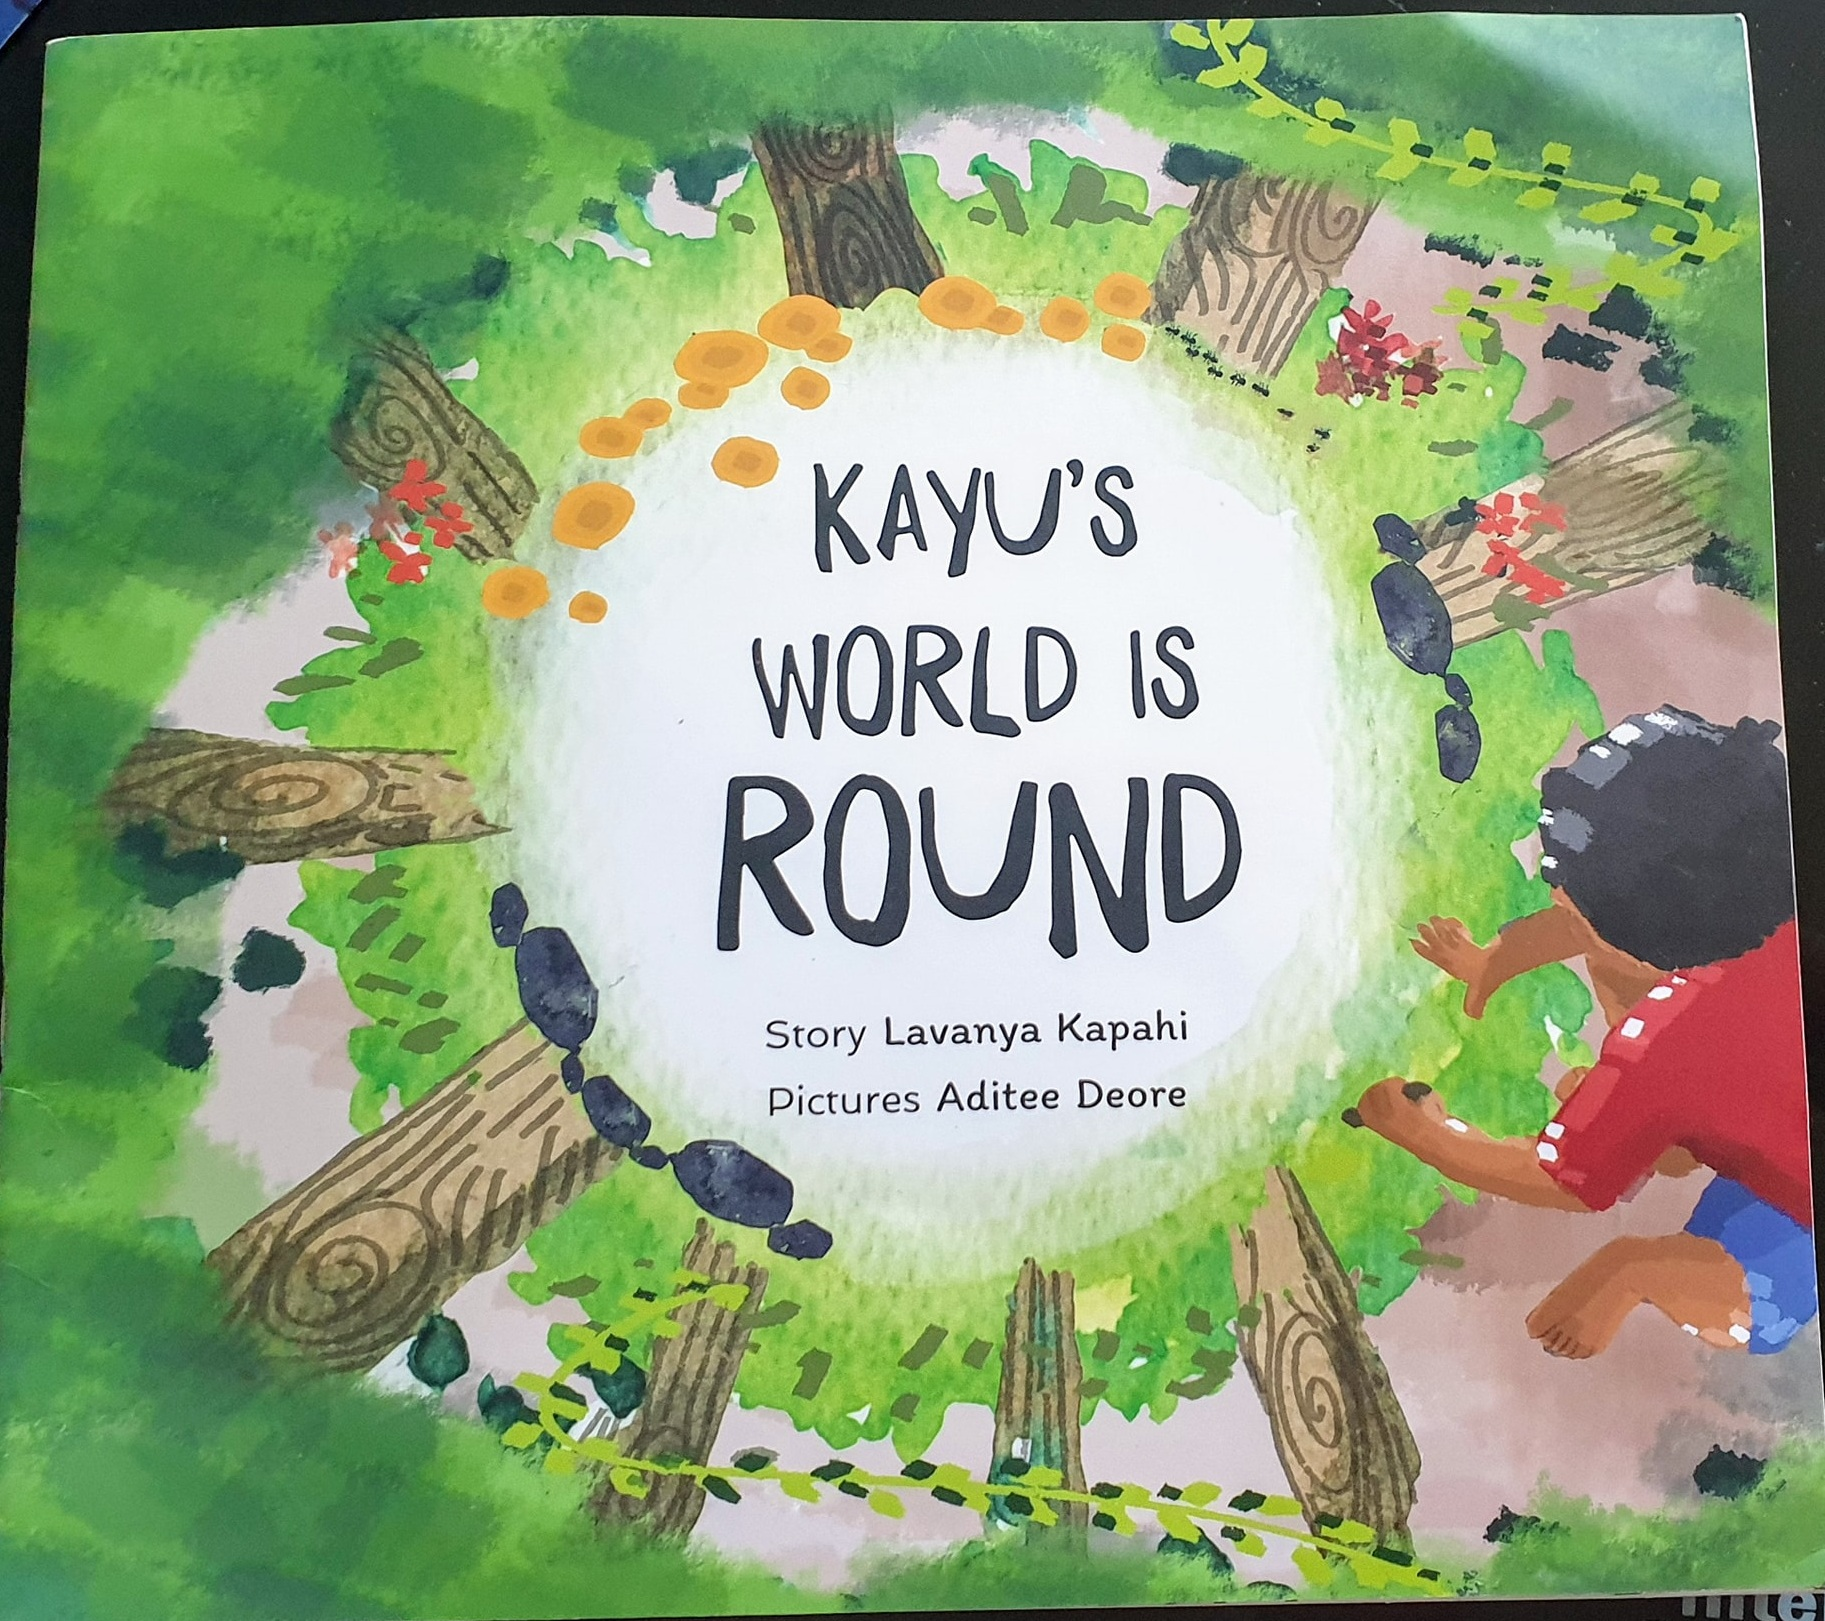 Review: Kayu's World is Round